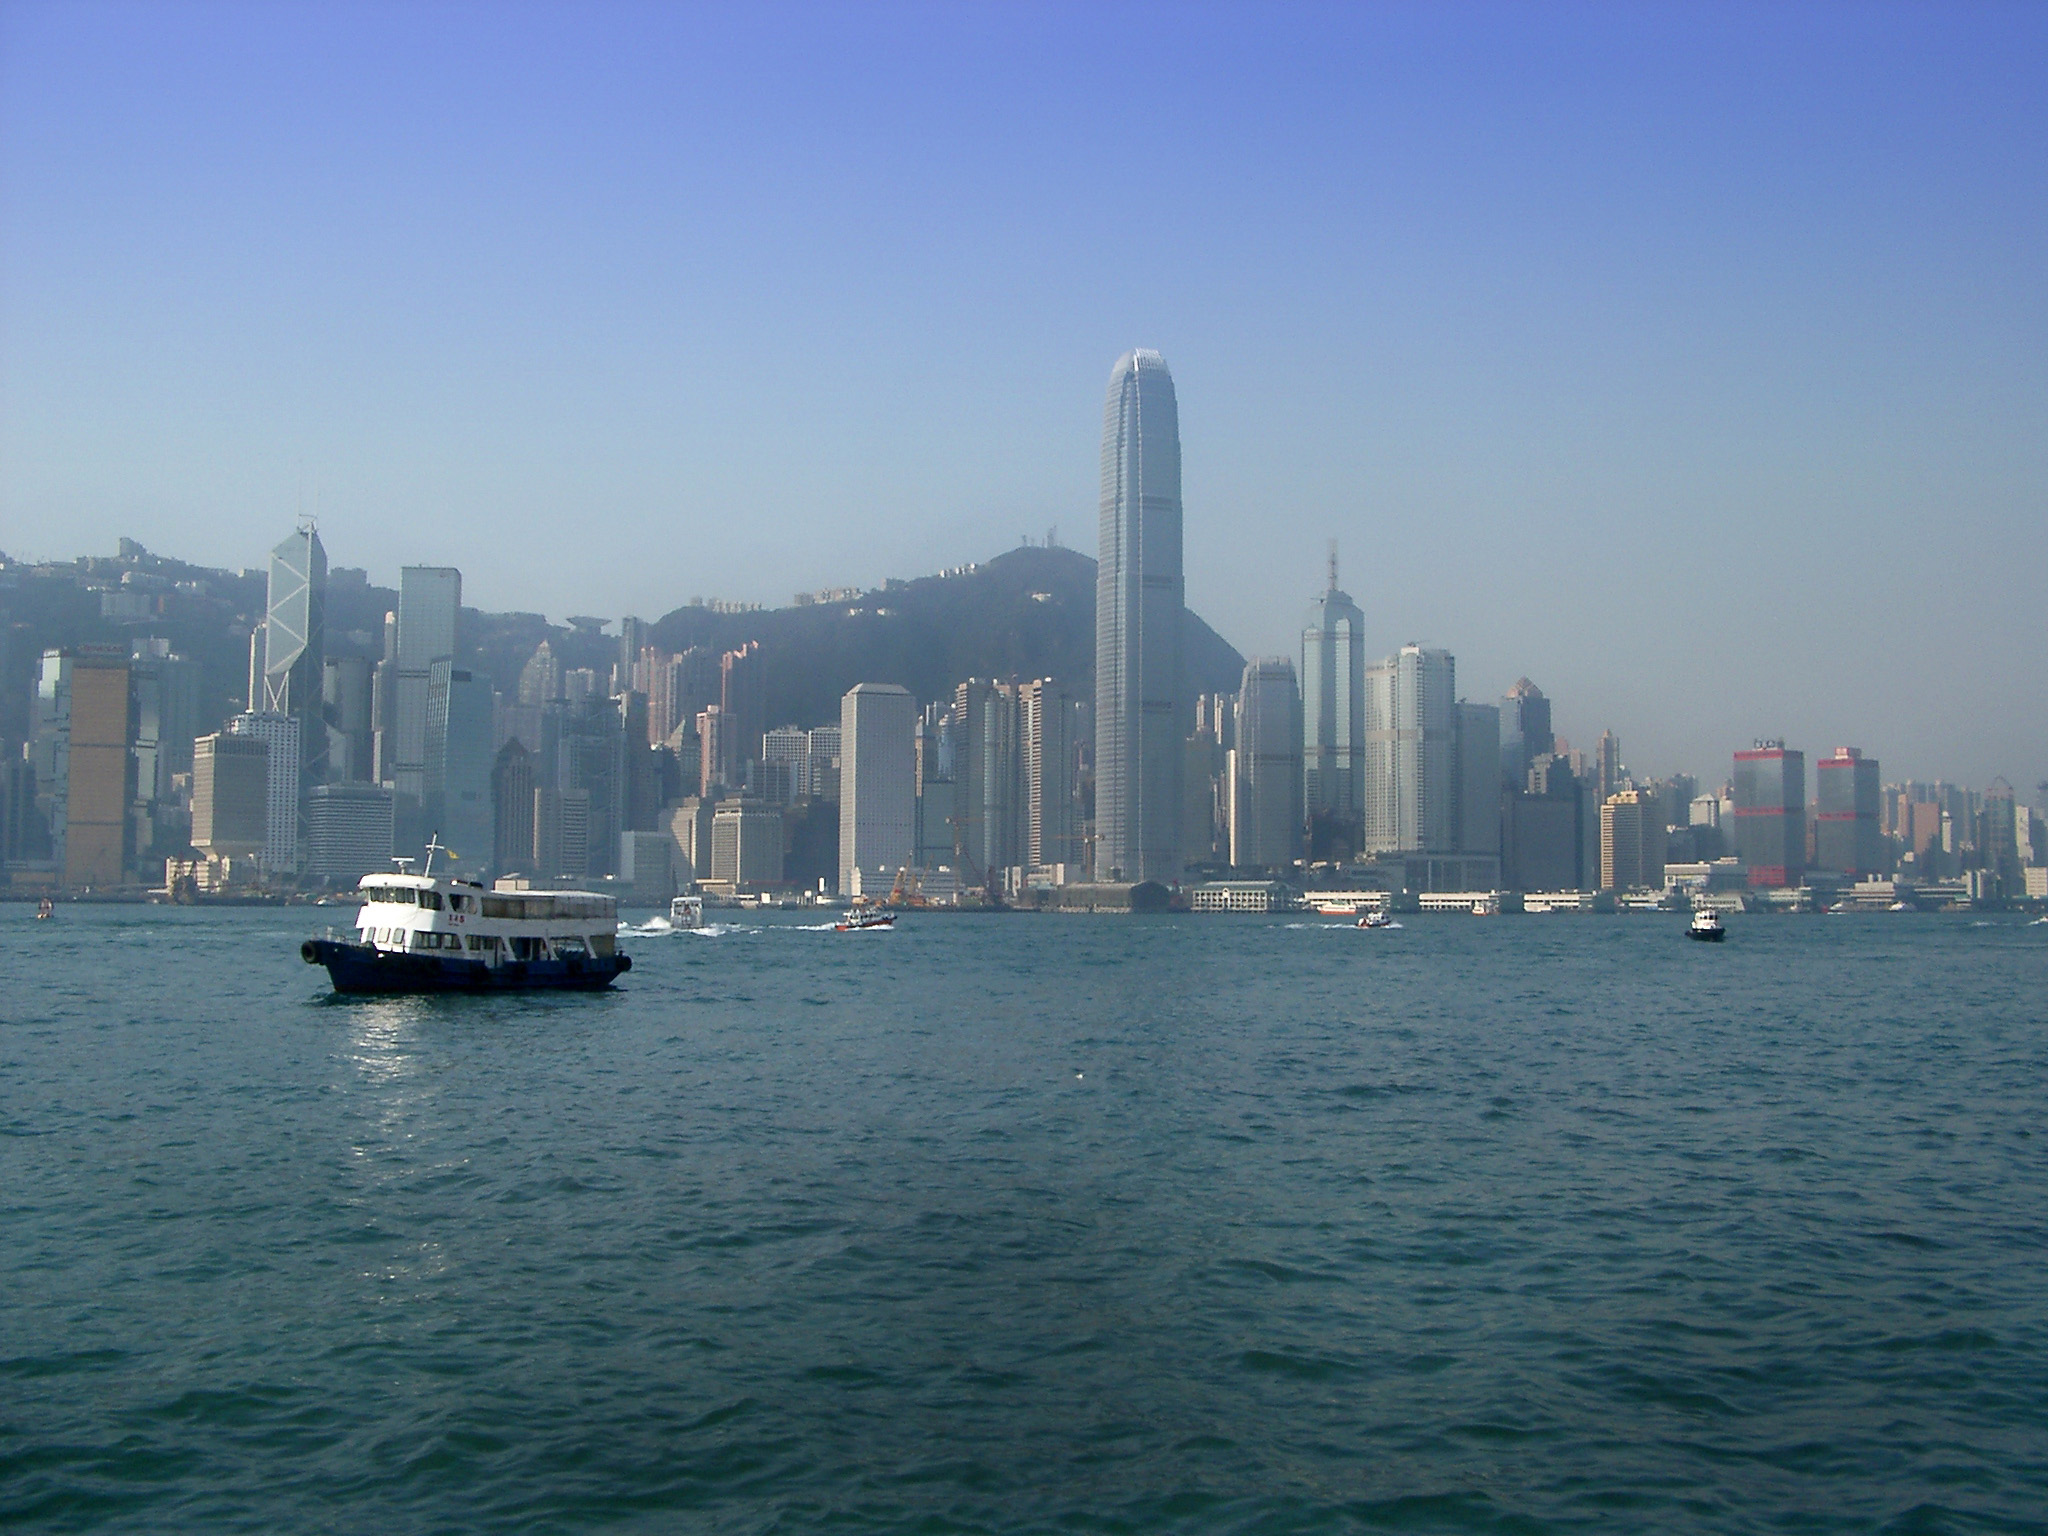 Star Ferry in Victoria Harbor with Hong Kong City Skyline, China